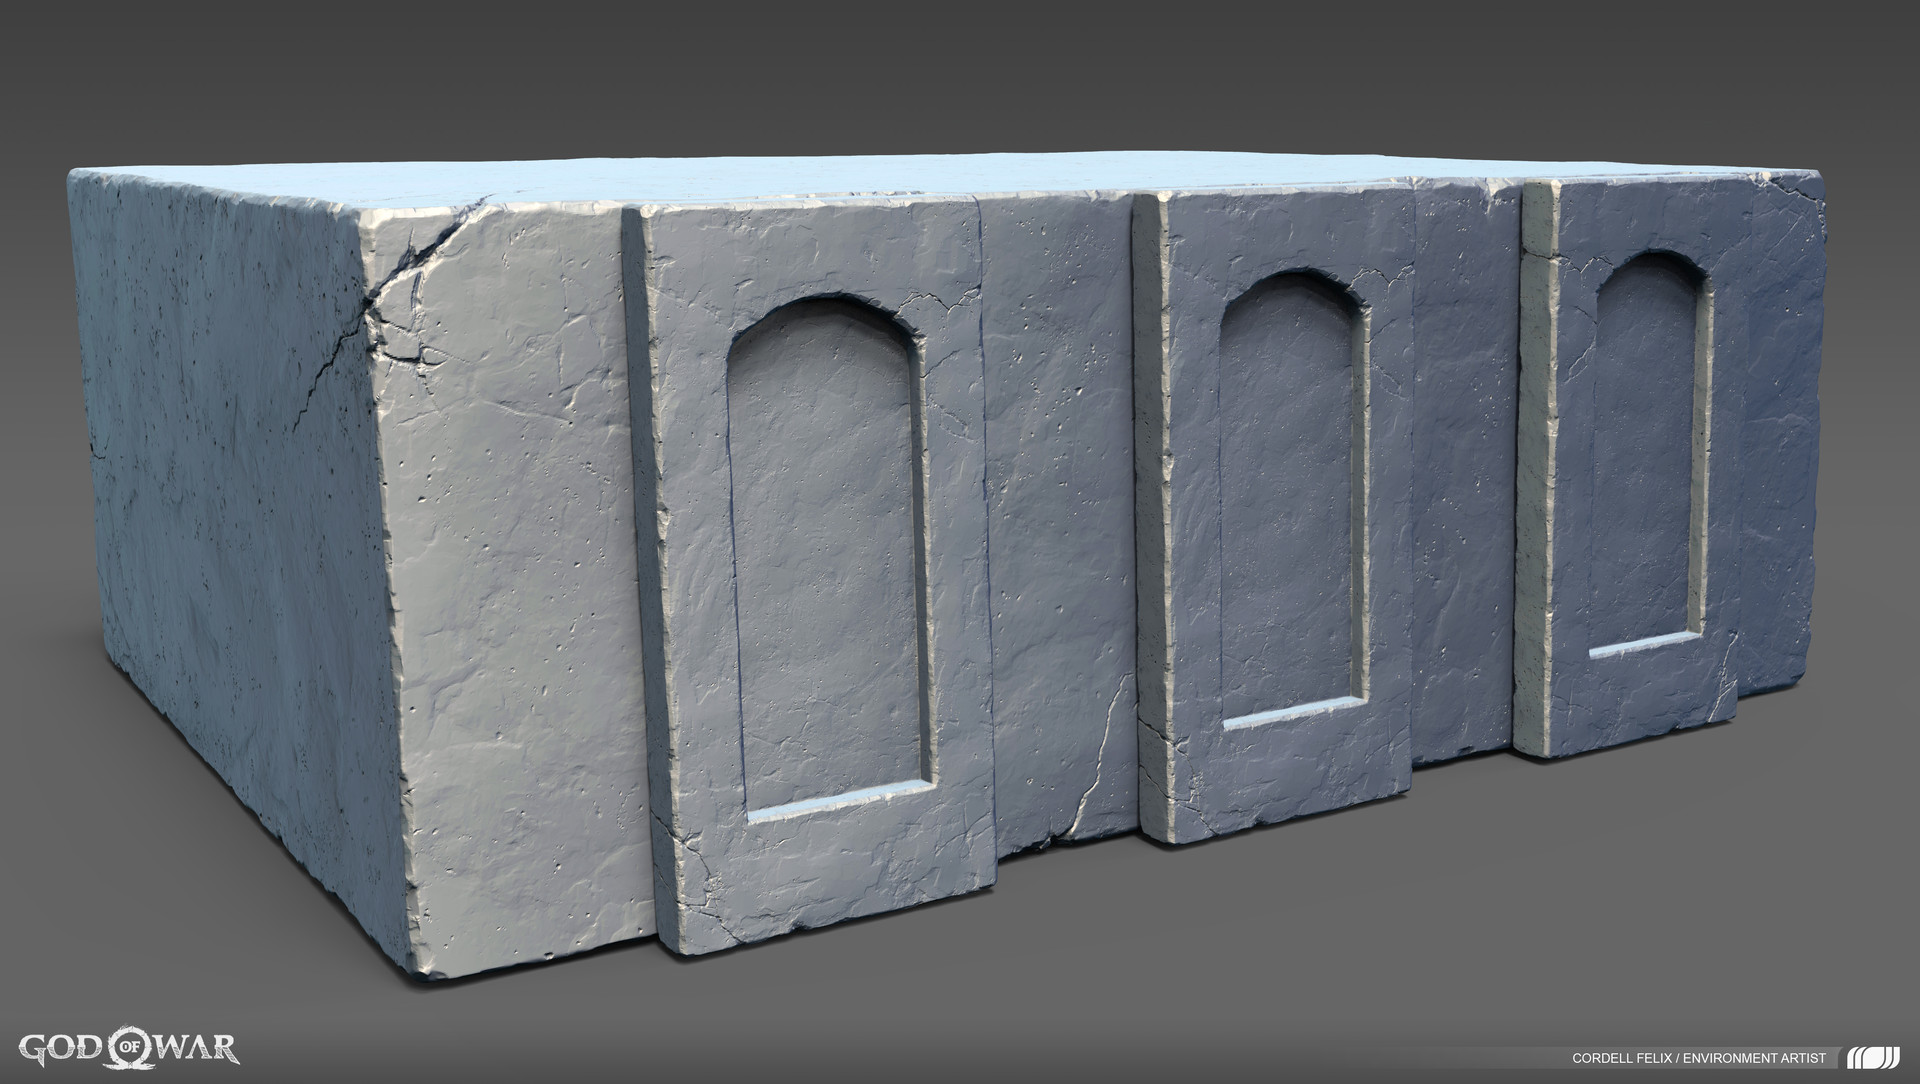 Cordell felix stone structure base 01